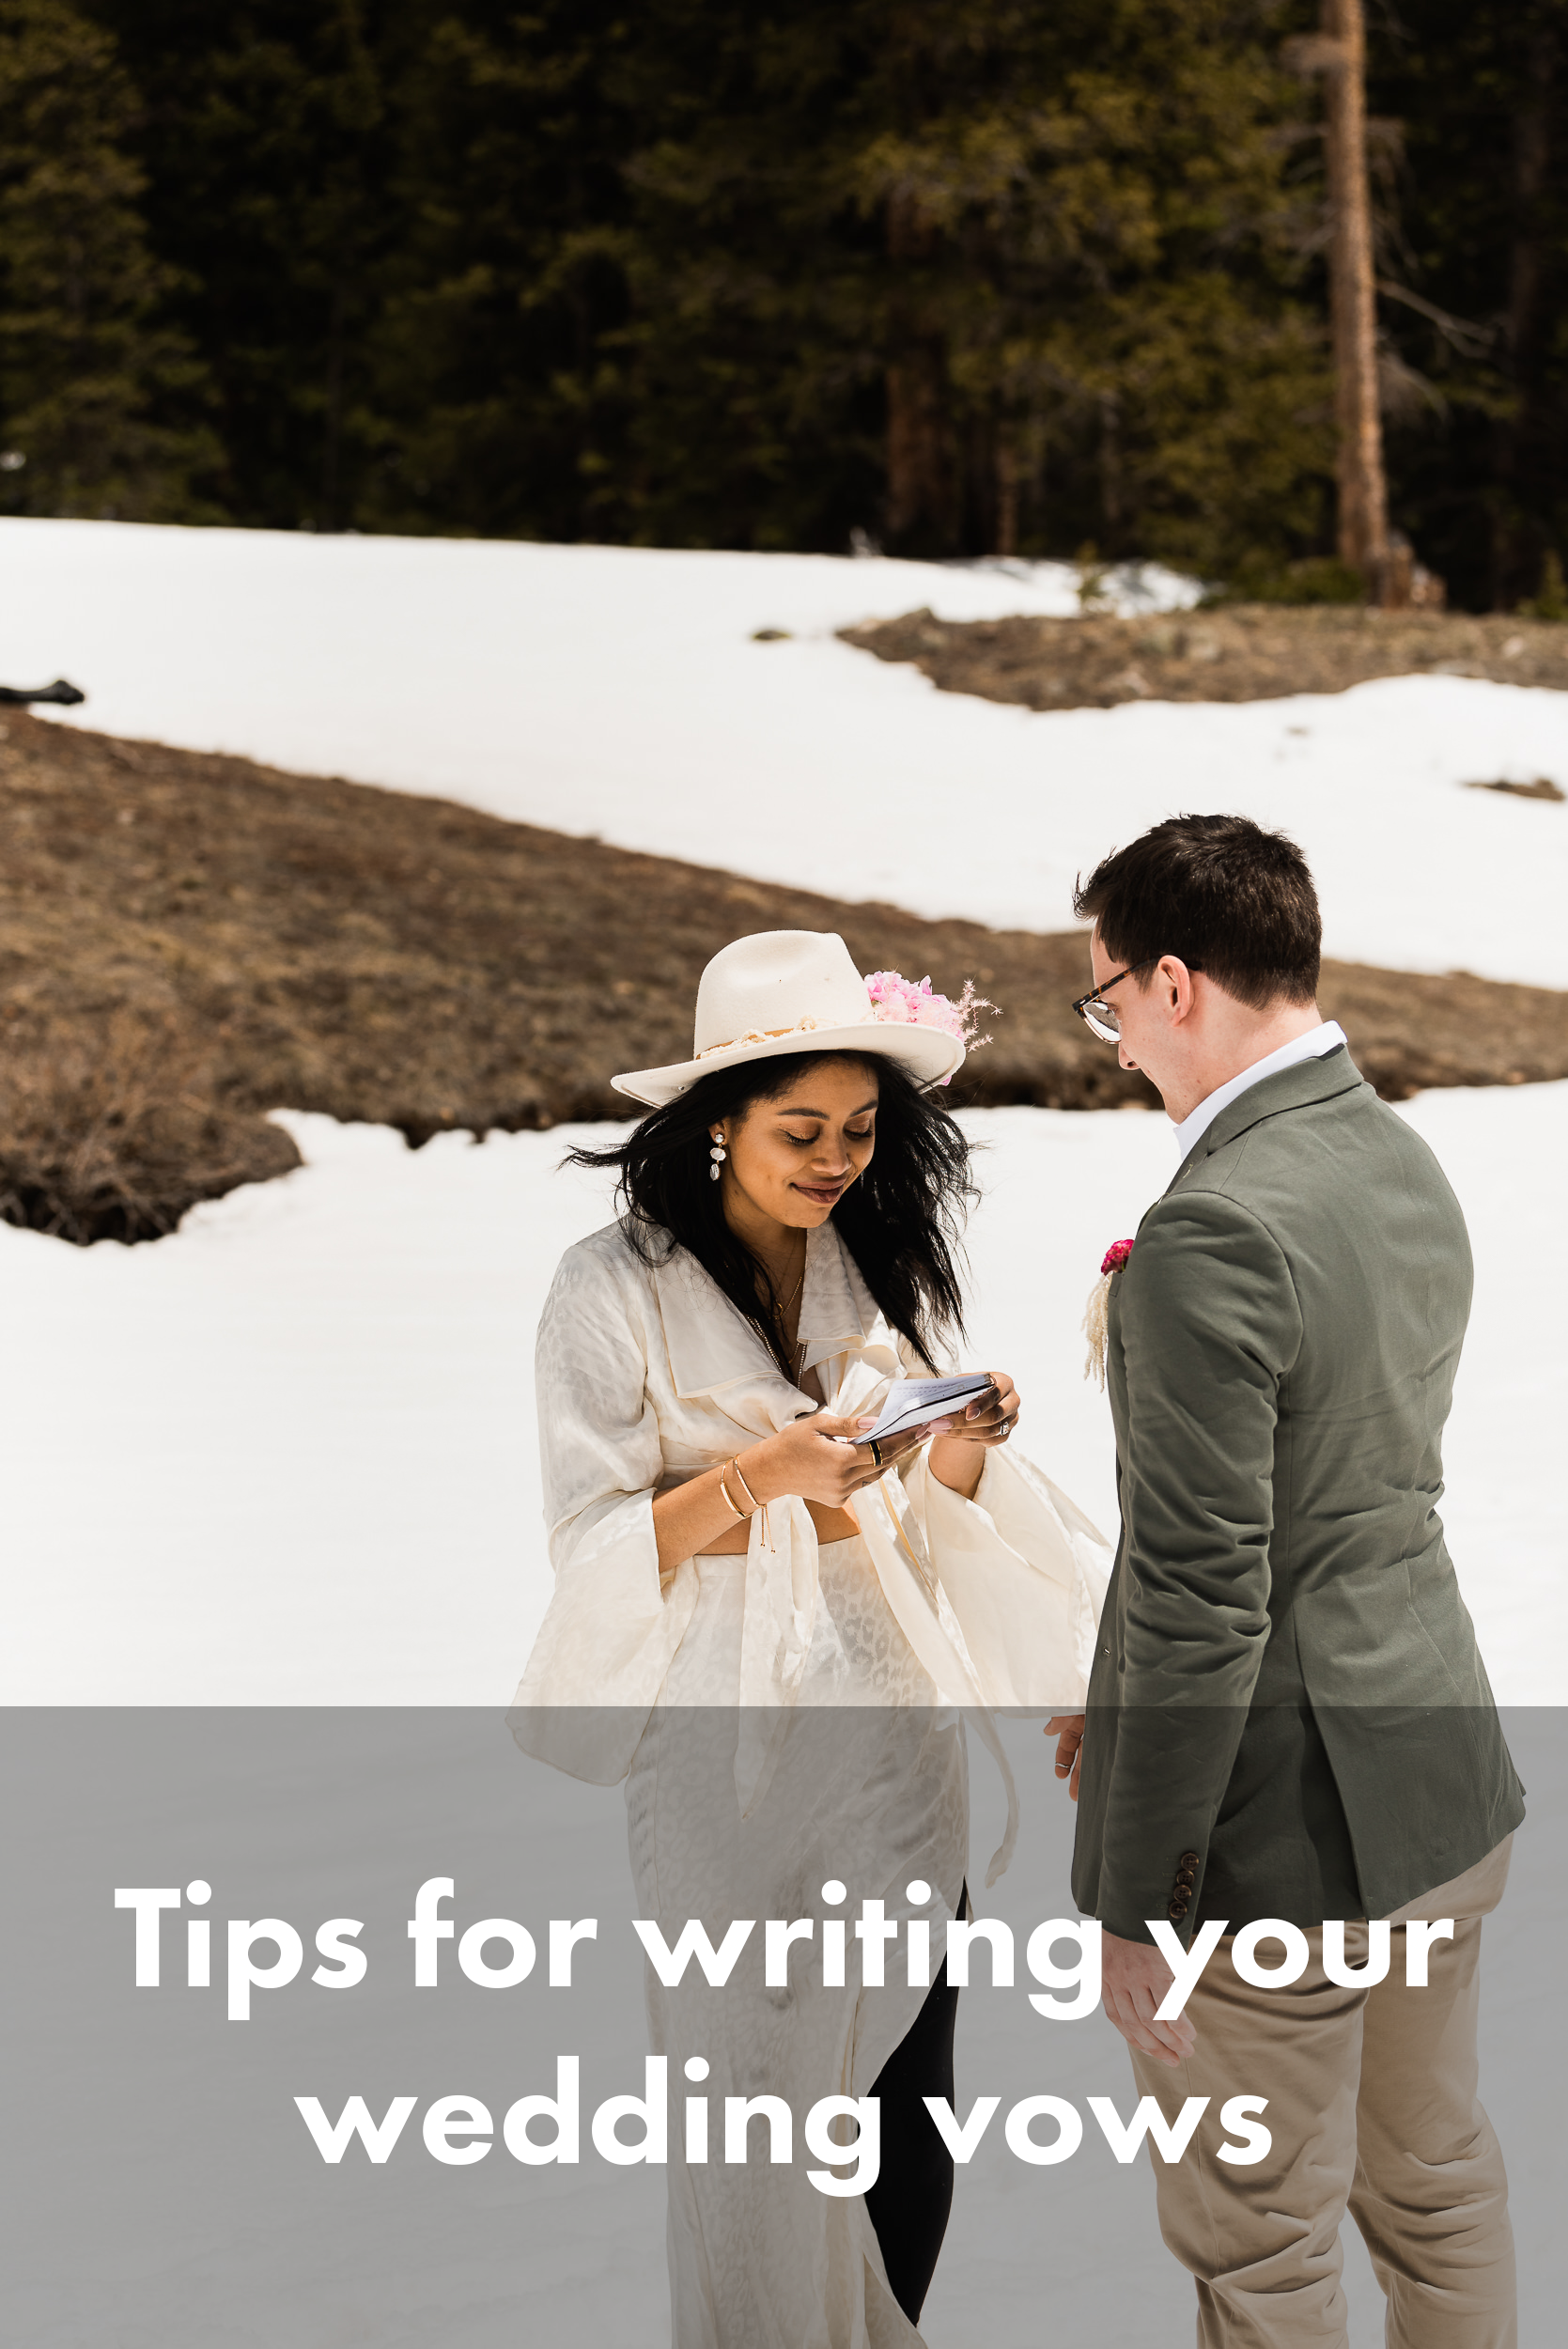 Here's an elopement couple during their ceremony – the bride is smiling and looking down at her vows as she reads them. She's on the left, her groom on the right. She's wearing an airy collared blouse, a hat with a flower in it, and leggings with hiking boots. The groom is wearing a blazer with chinos. Snow is all around them, with trees in the background.